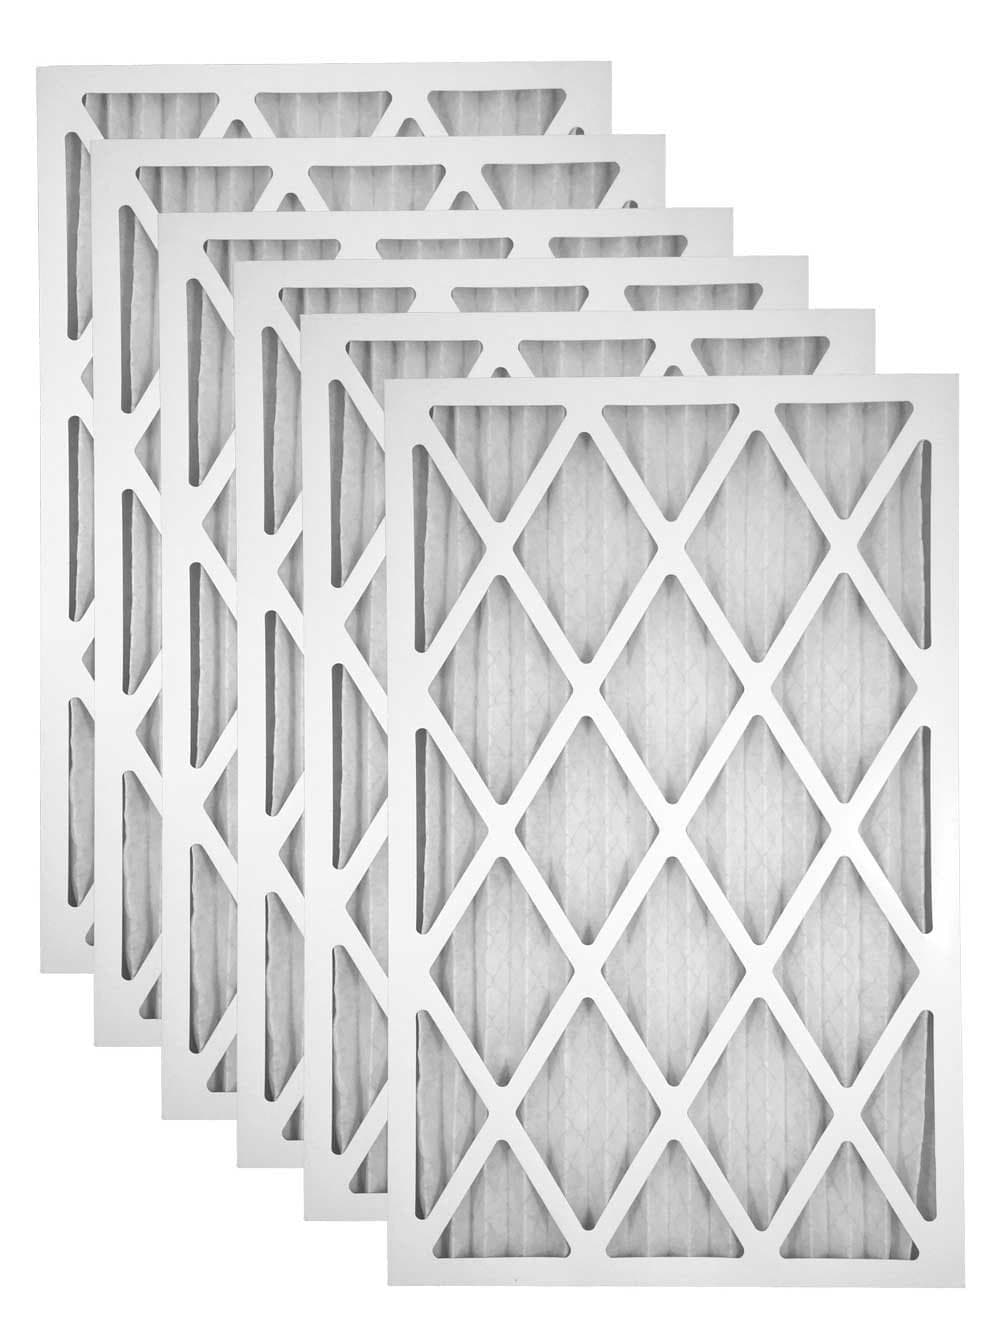 12x24x1 Merv 11 AC Furnace Filter - Case of 6